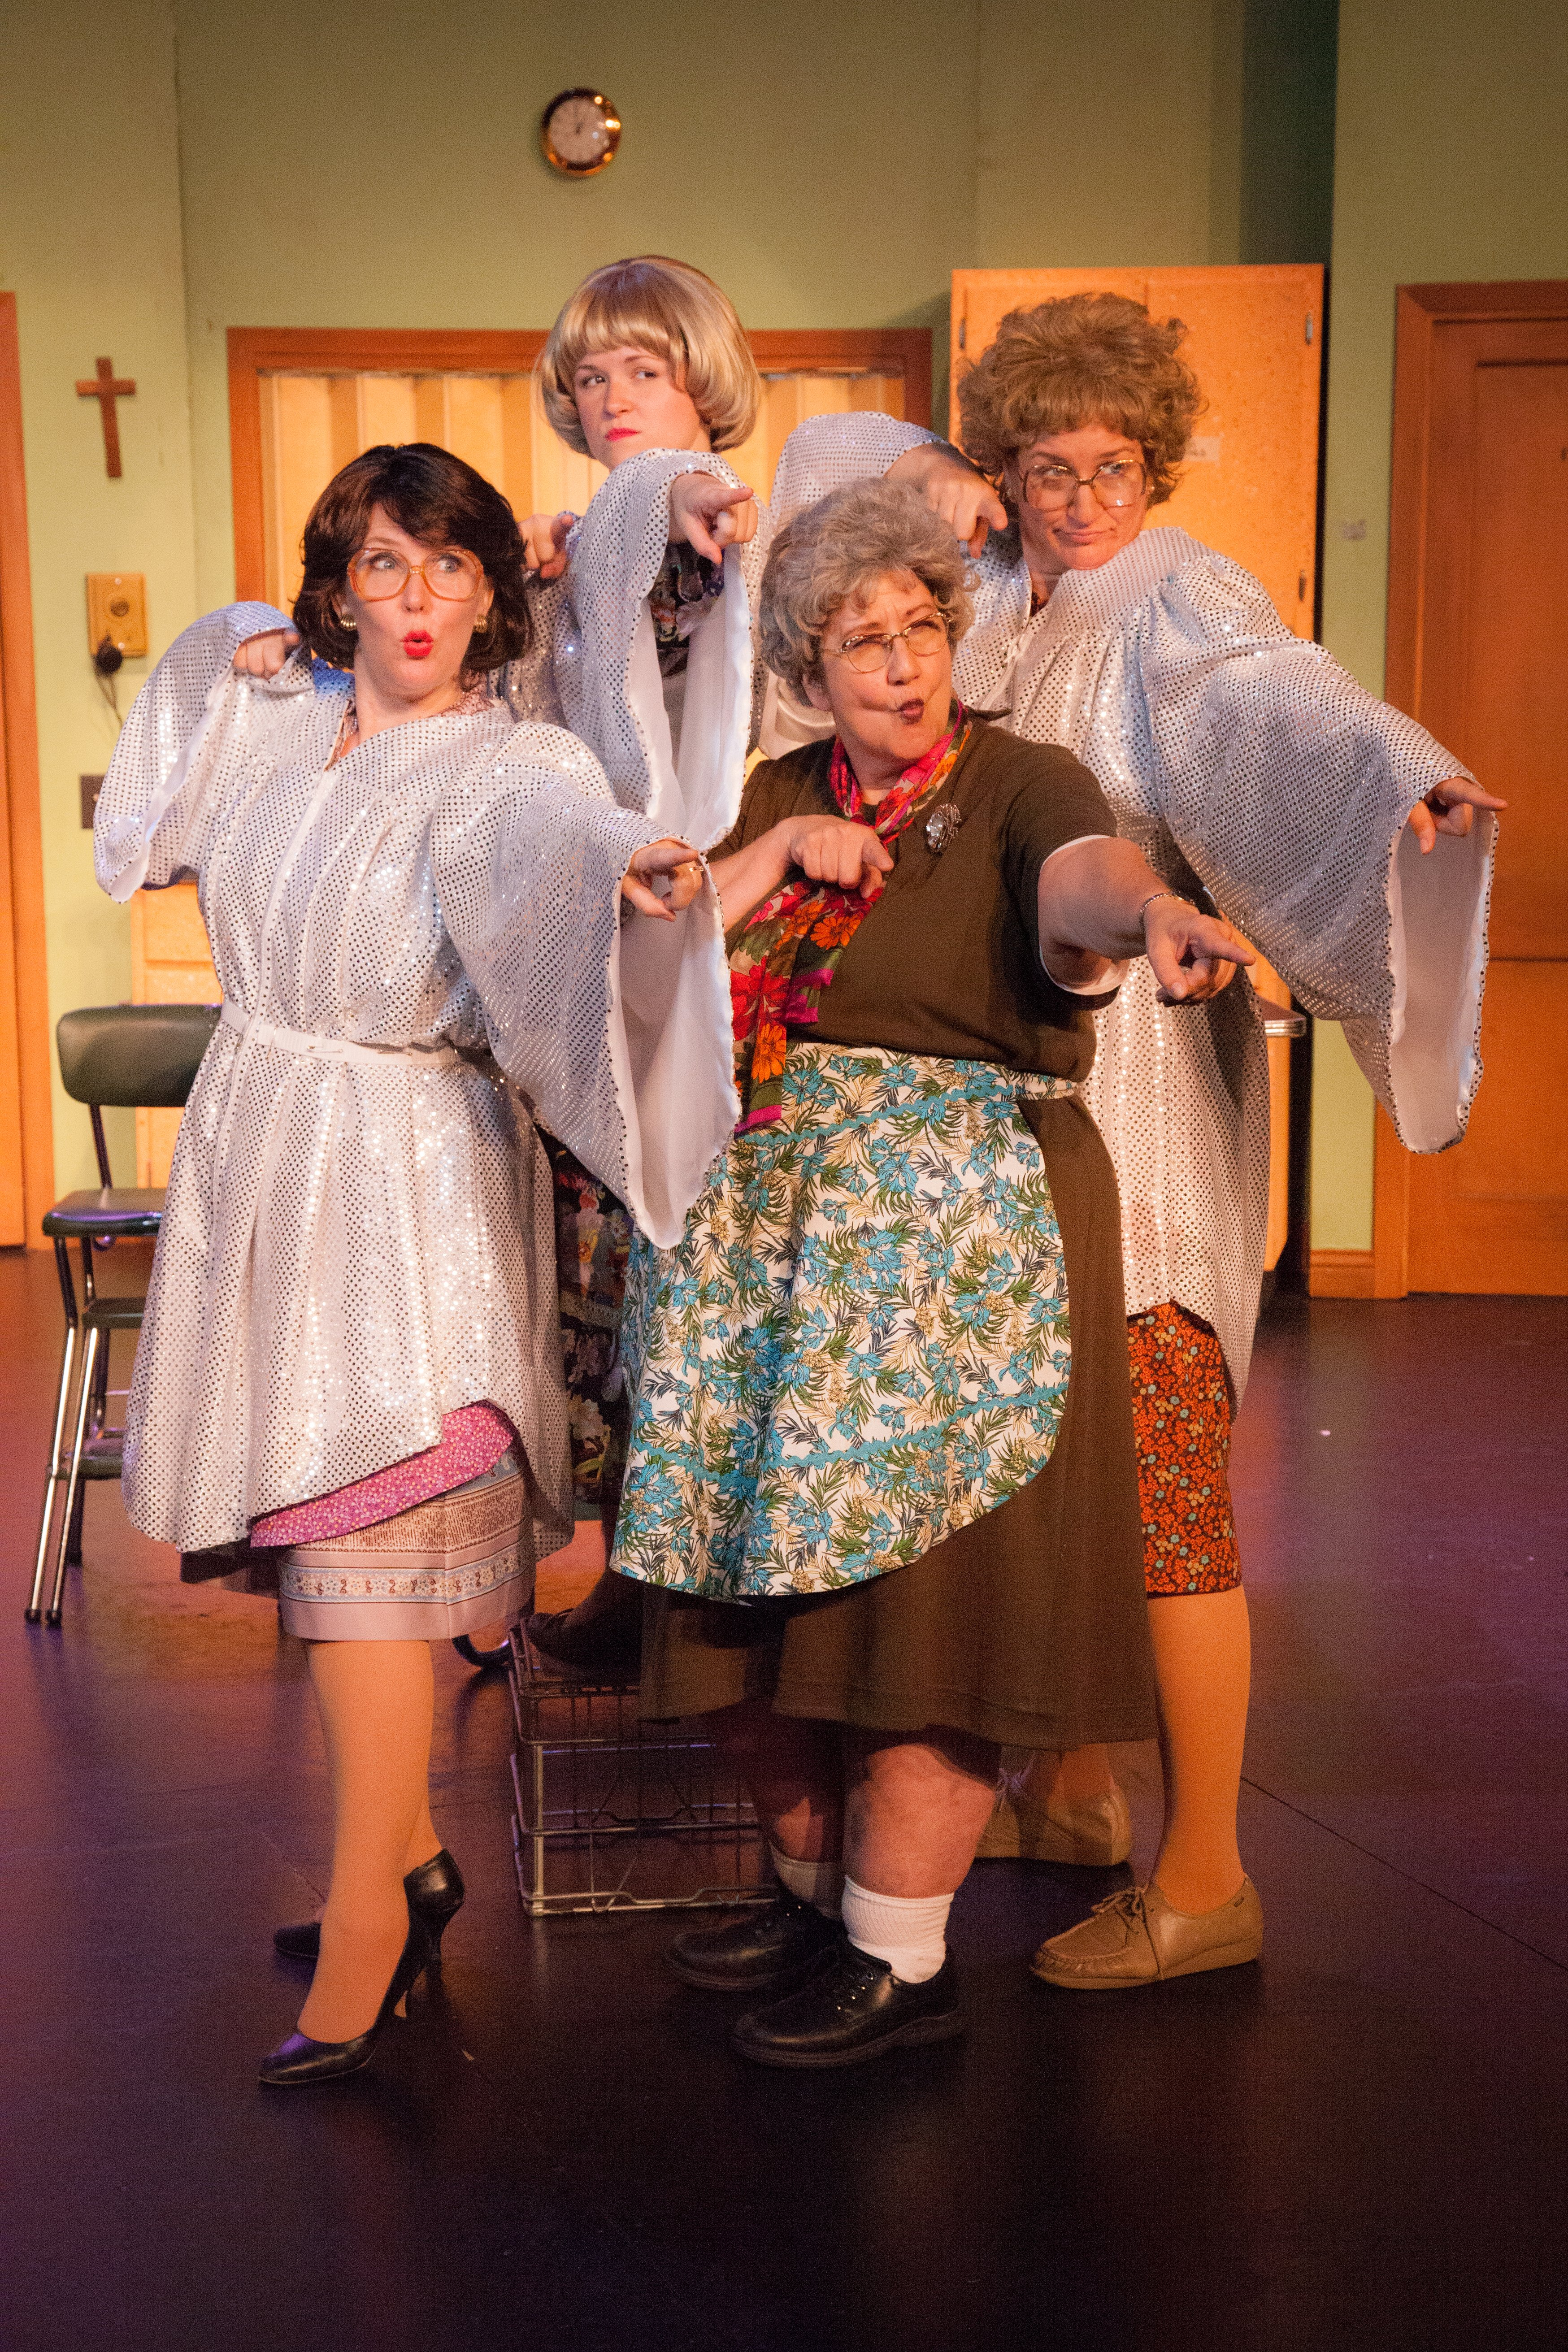 THEATER REVIEW | At The Plymouth Playhouse, The Church Basement Ladies  Serve U201cThe Last (Potluck) Supperu201d | Twin Cities Daily Planet